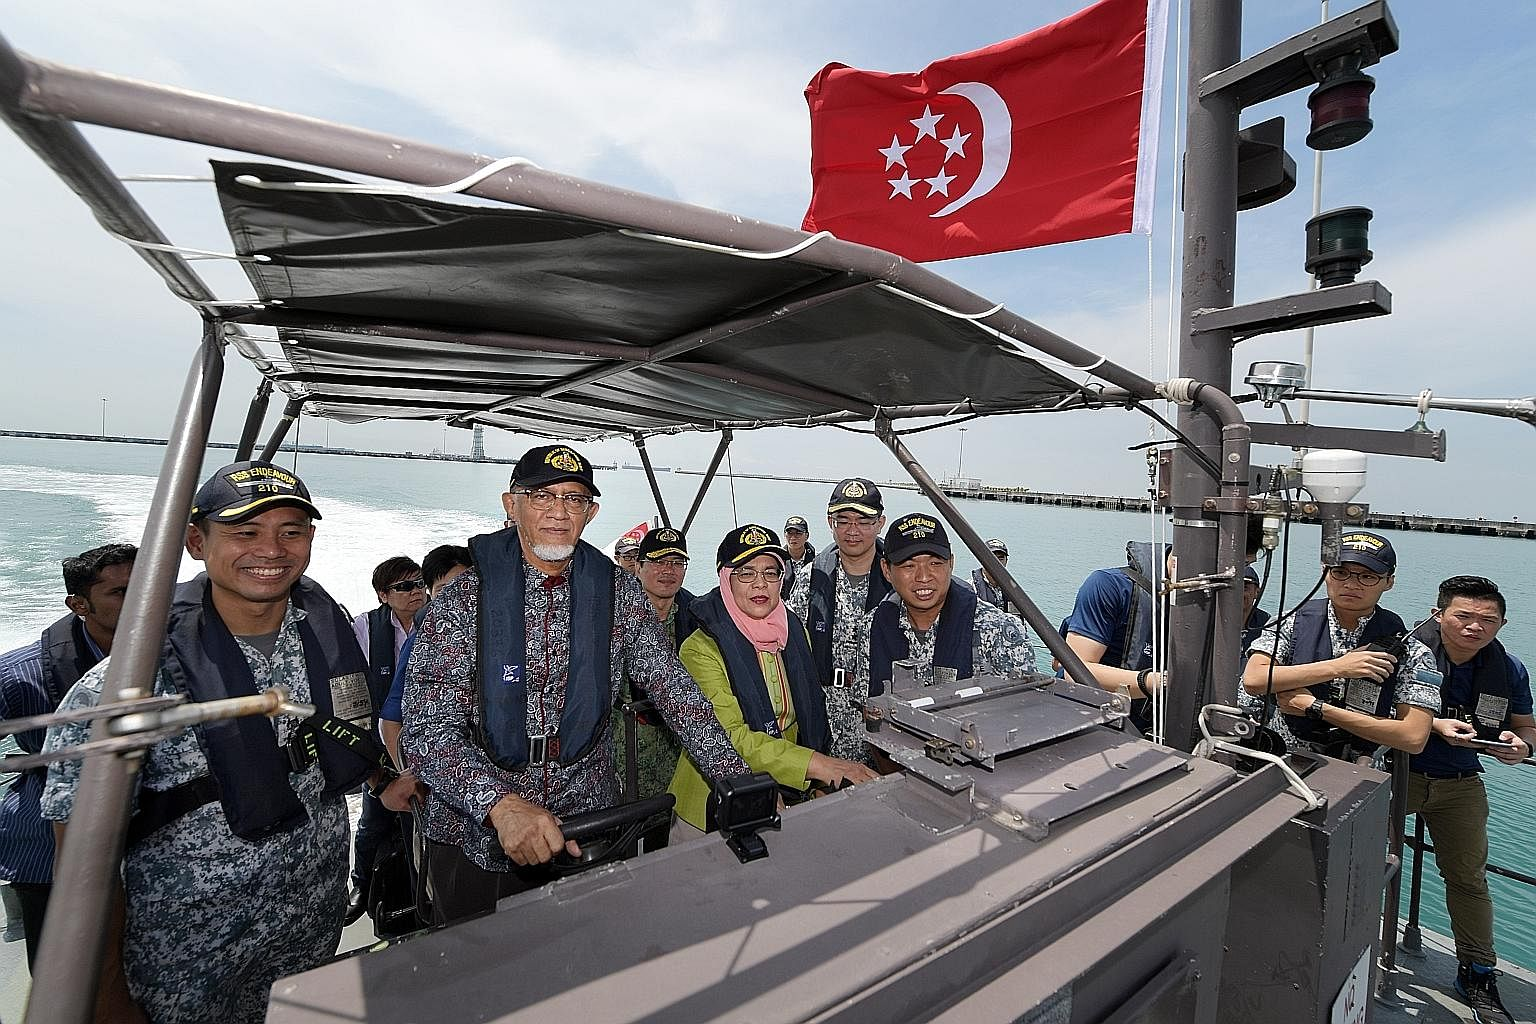 President Halimah Yacob and her husband Mohamed Abdullah Alhabshee (second from left) tried their hand at steering a Singapore navy fast craft at RSS Singapura-Changi Naval Base yesterday, with Military Expert 3 William Toh (right) guiding them. It w